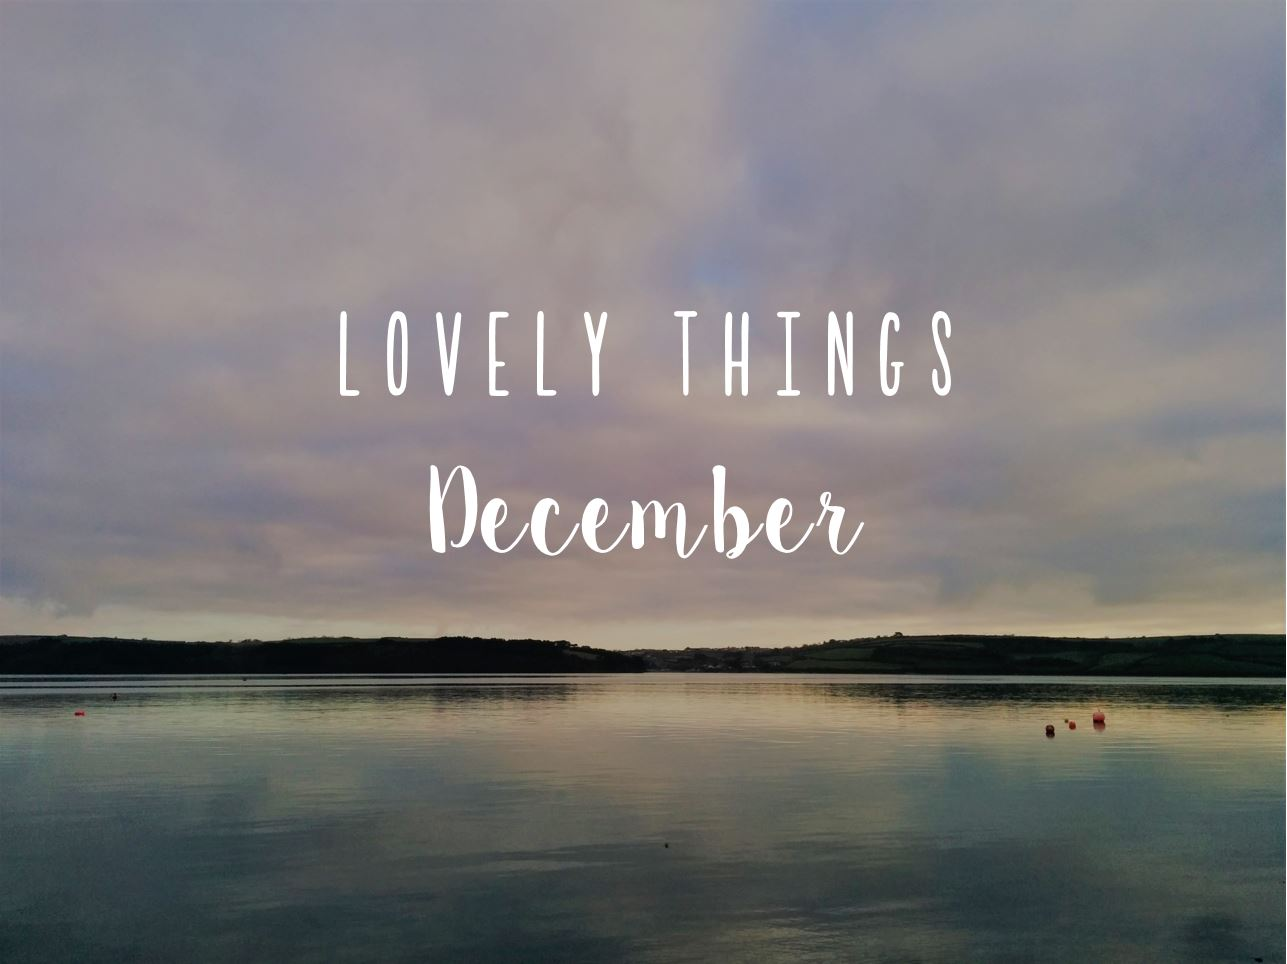 lovely-things-december-1